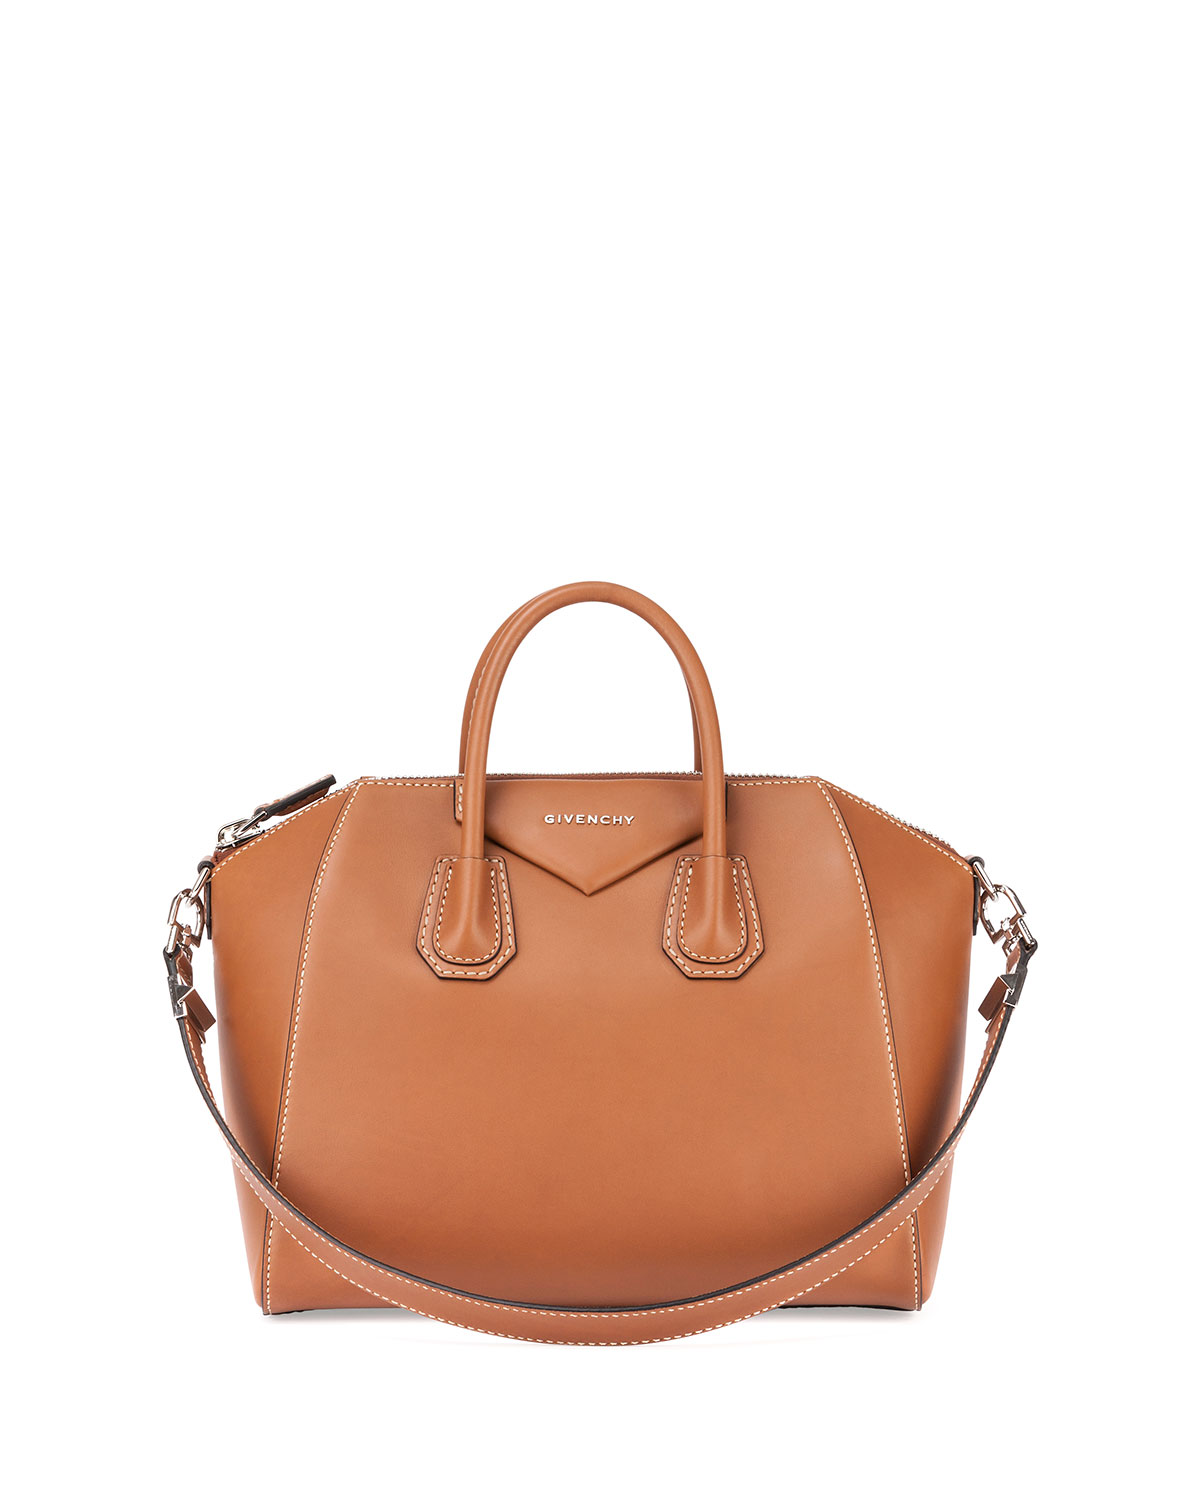 Givenchy Antigona Medium Smooth Calfskin Satchel Bag 7d831c4fc66a7